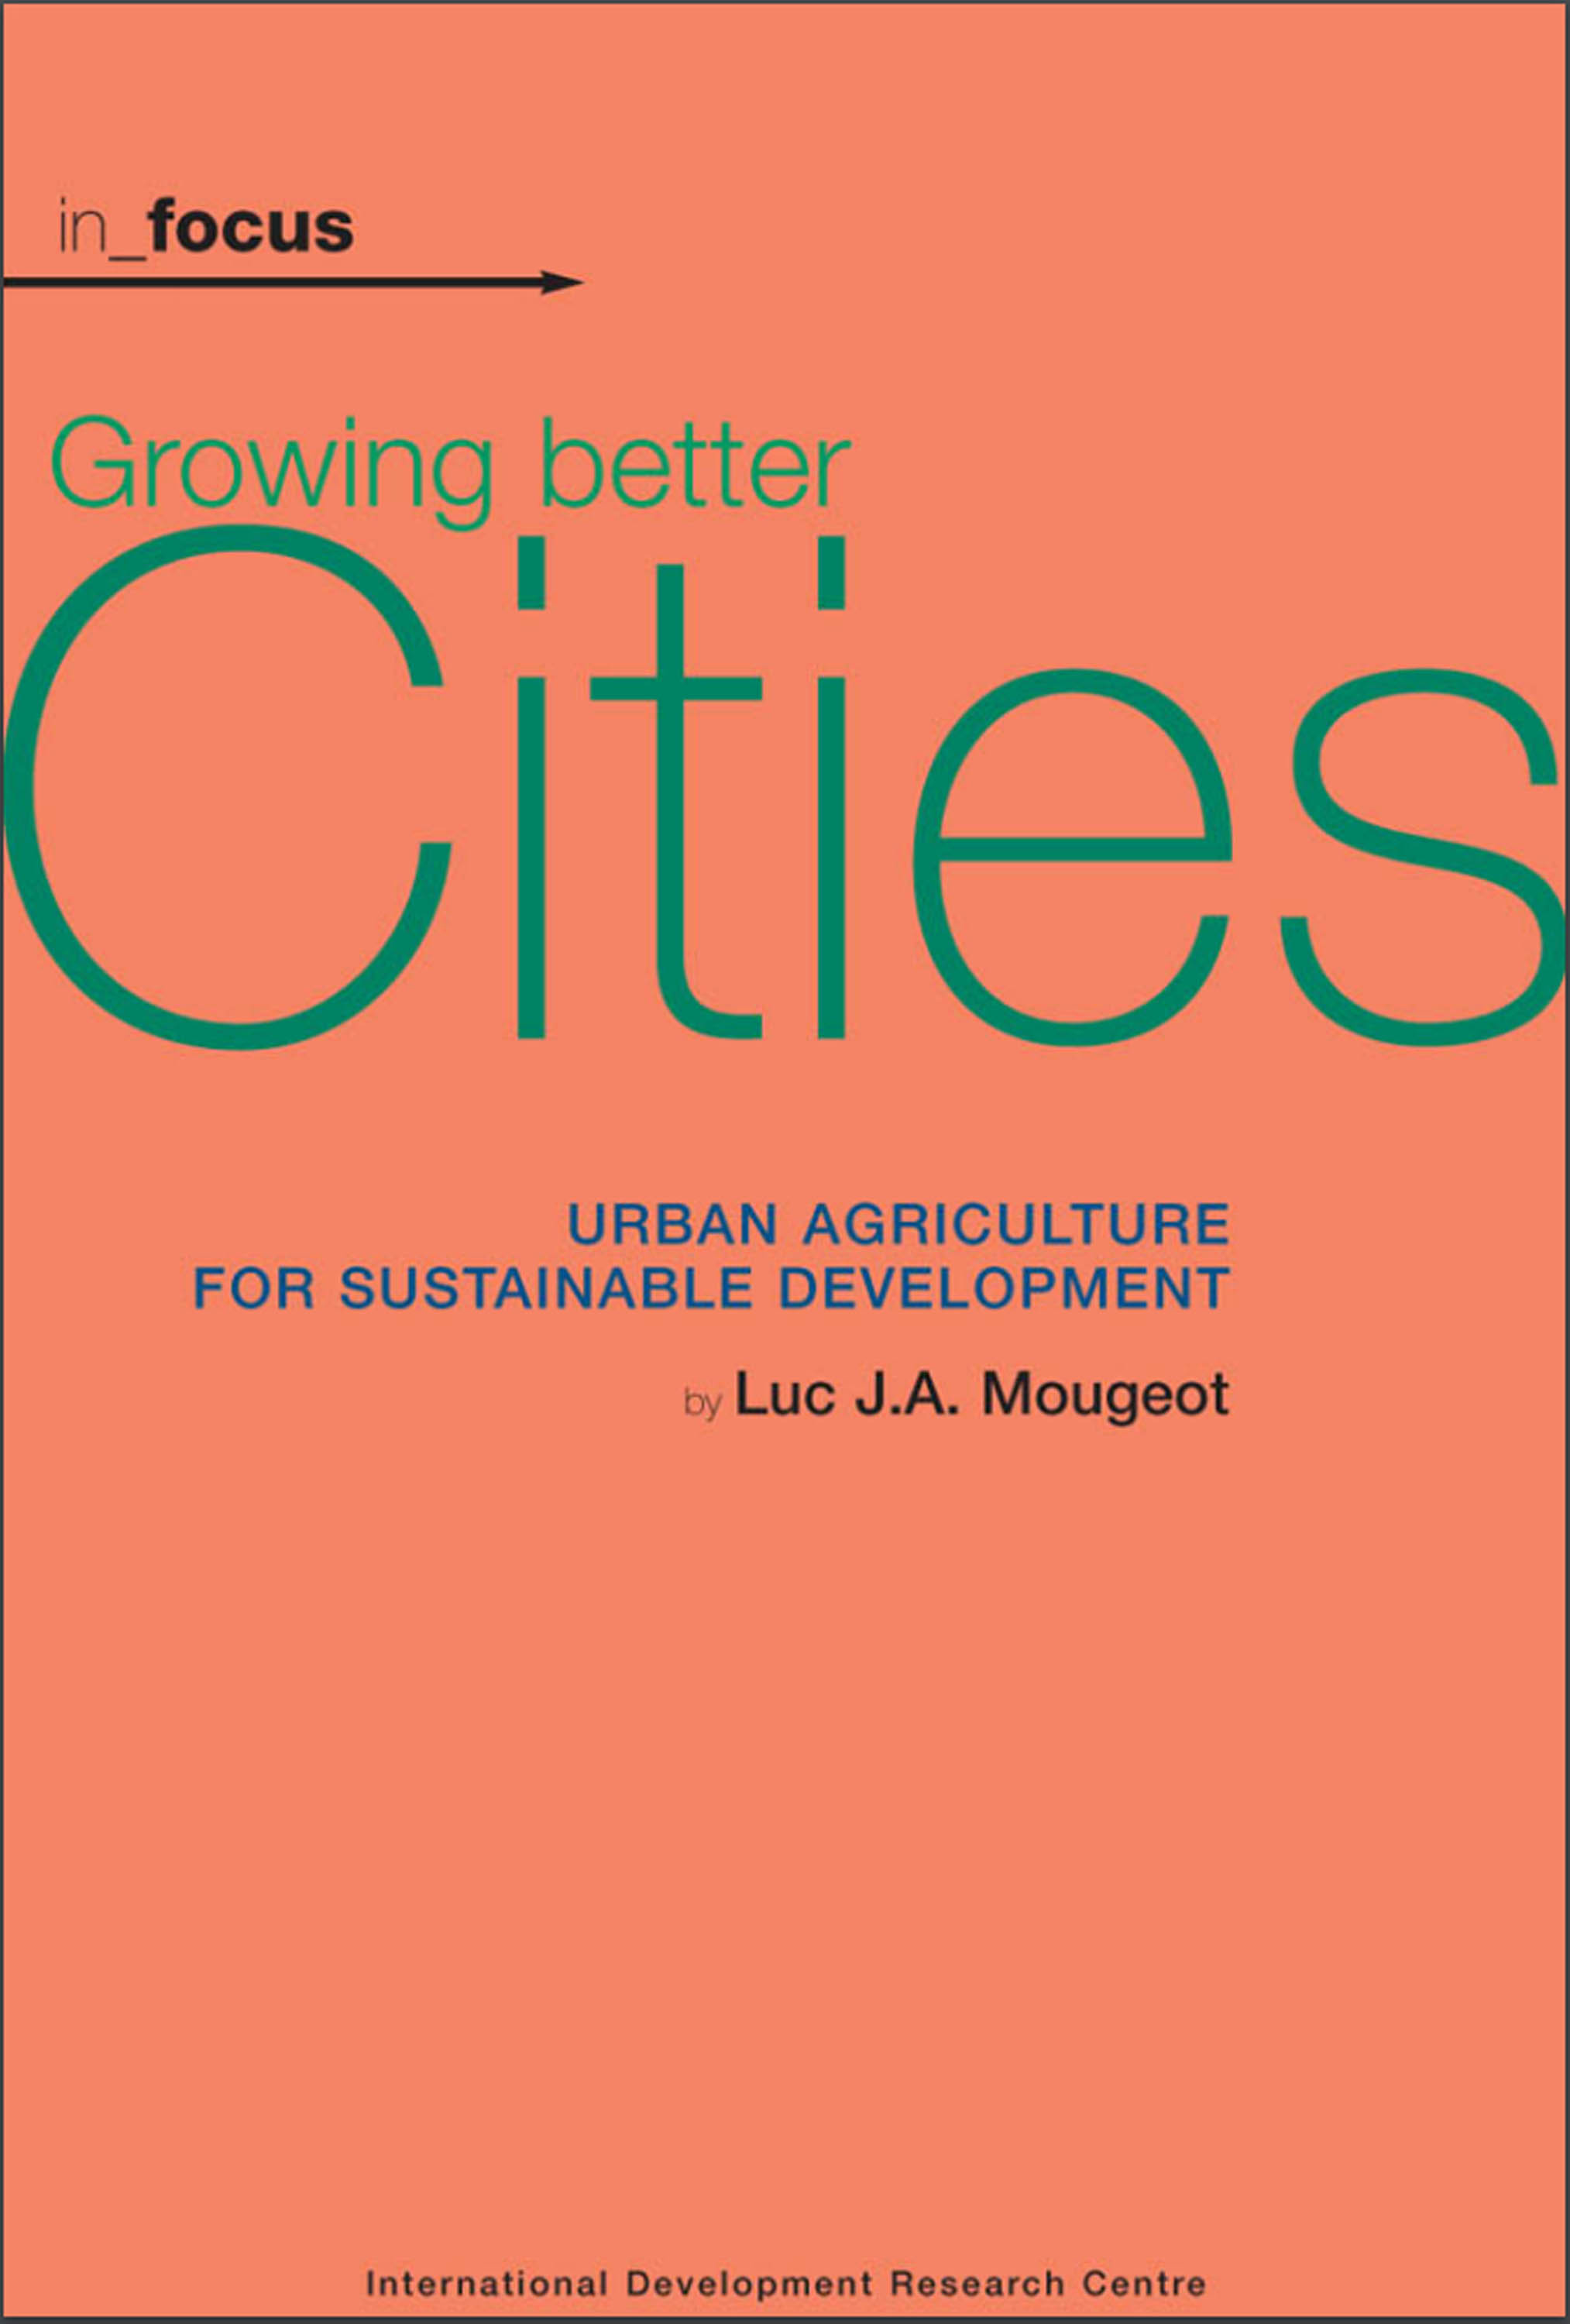 Growing Better Cities